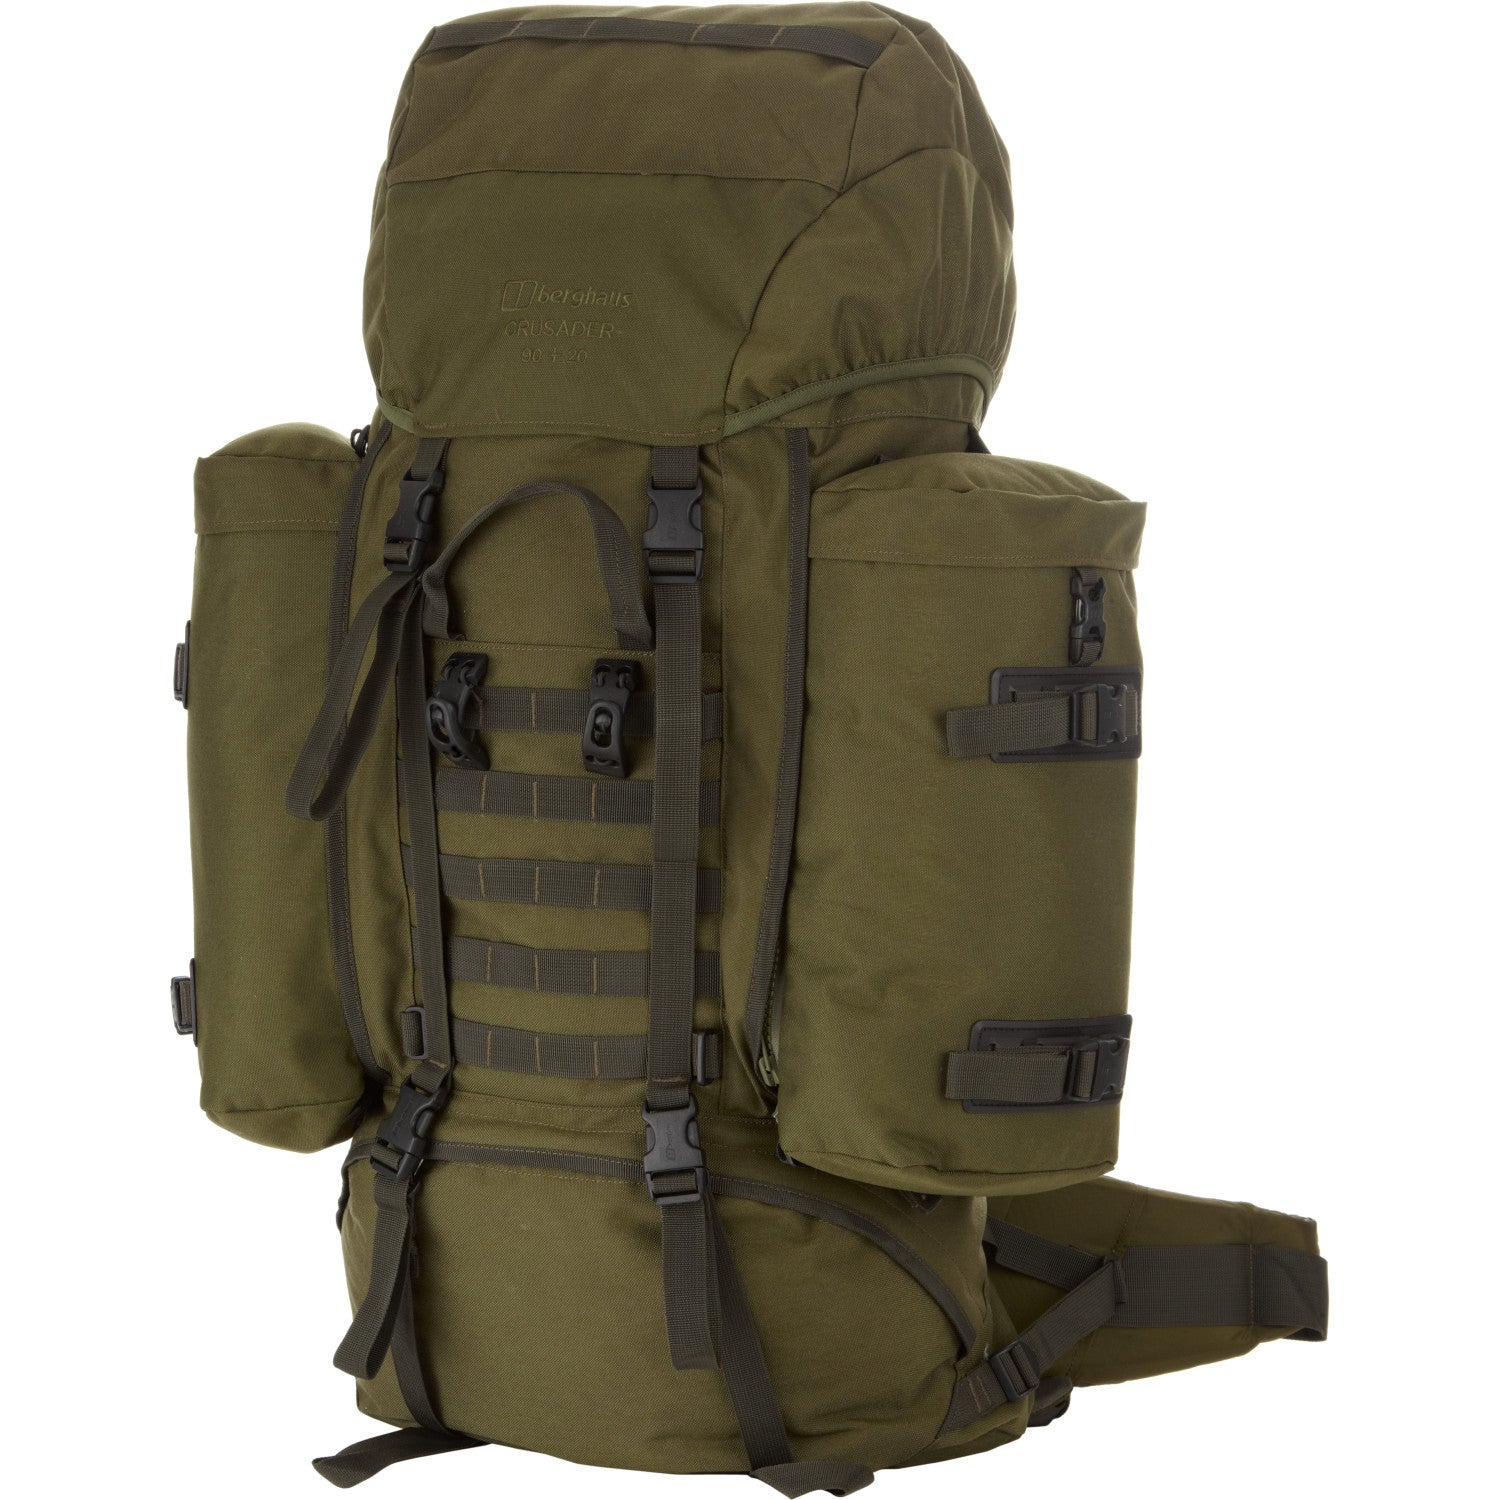 2 Backpack Plus from Berghaus III Size 20 Crusader Military 90 MMPS qPwPvF8Bg